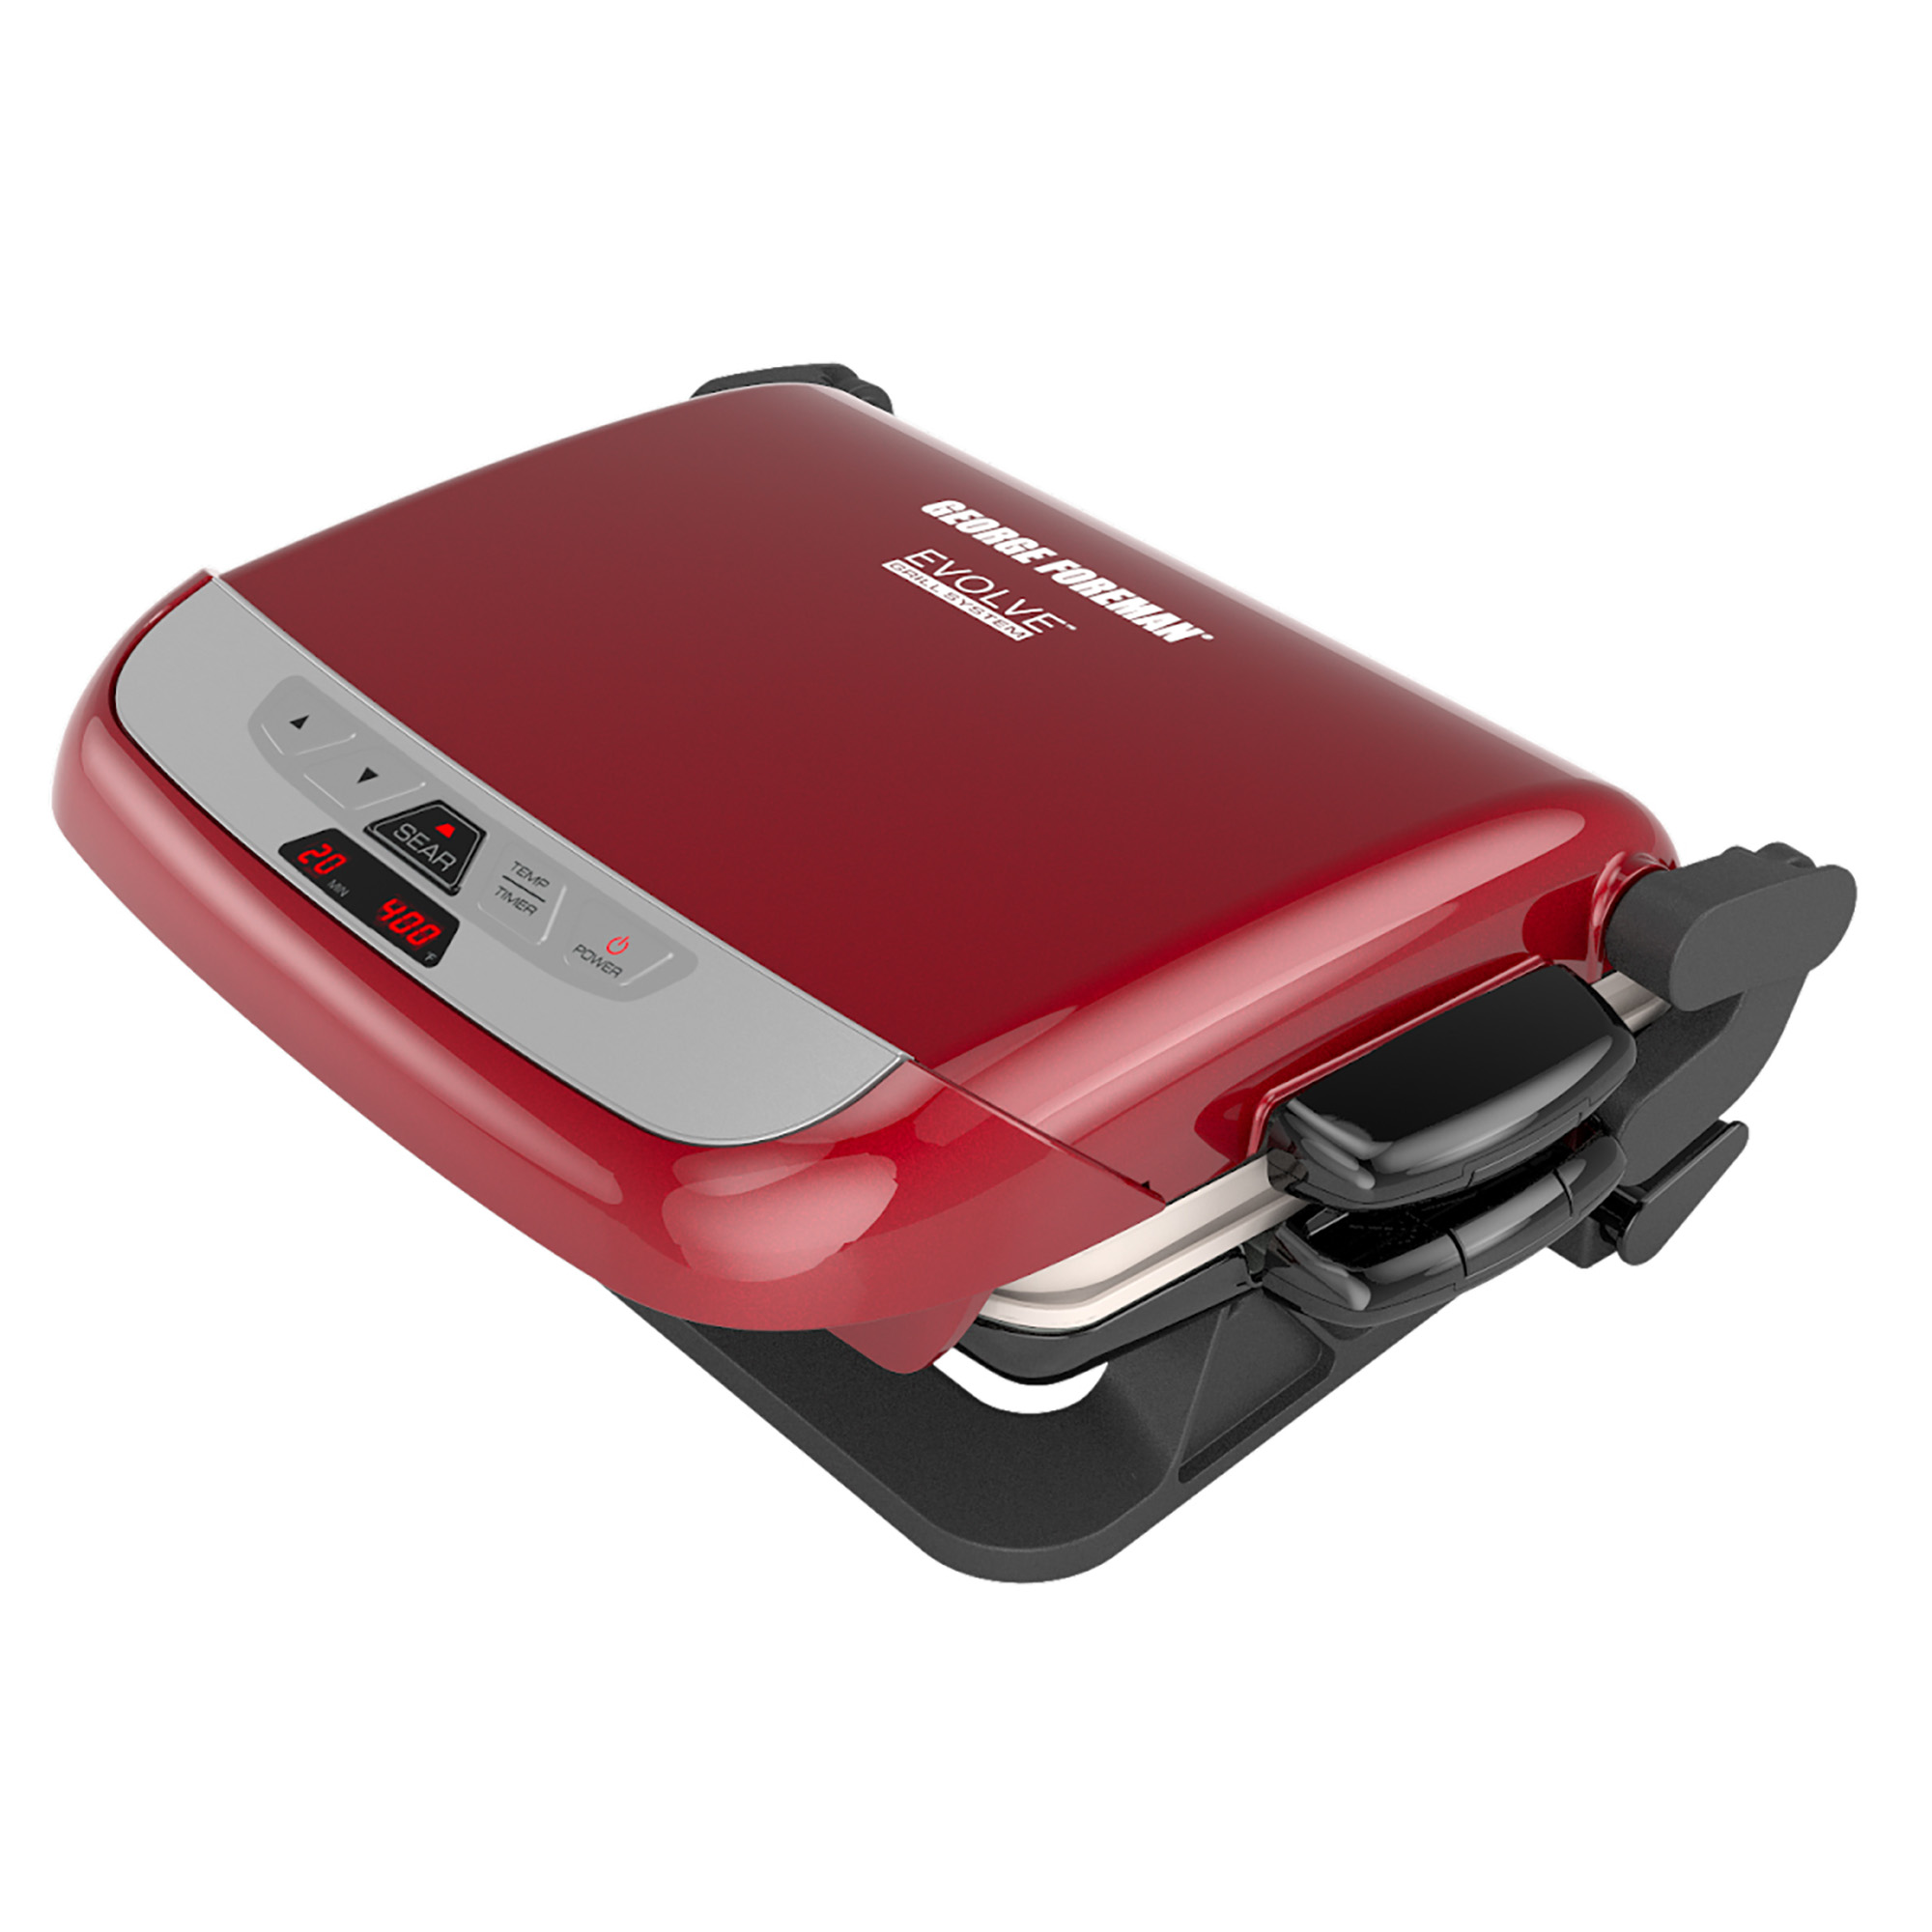 George Foreman Ceramic Plates 5 Serving Multi-Plate Red Grill System with Waffle Plates, 1 Piece